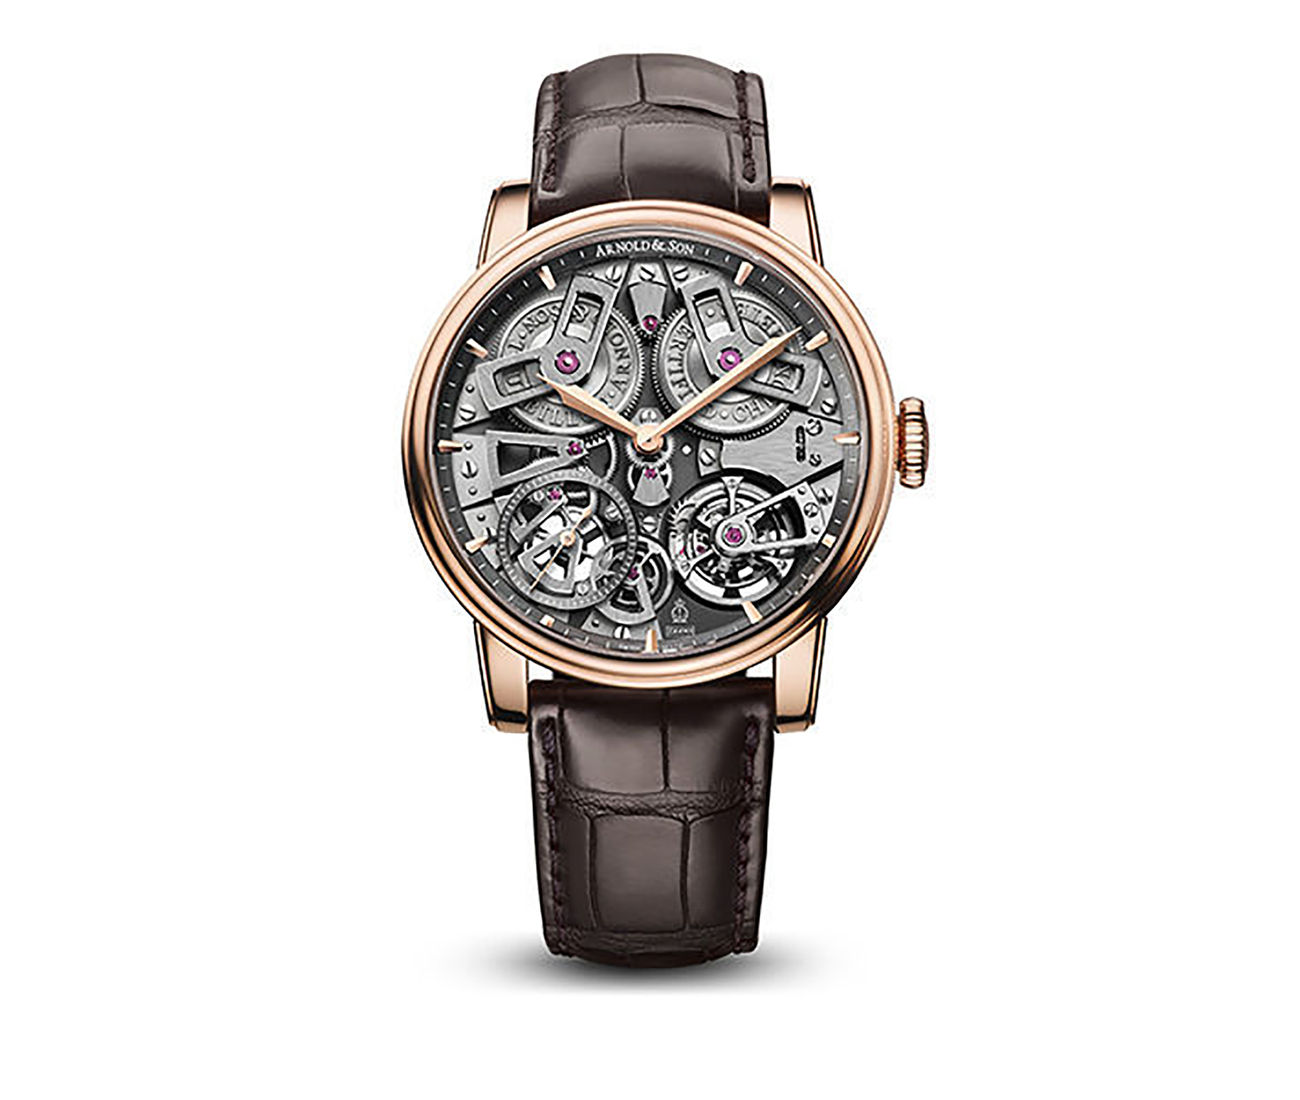 TOURBILLON CHRONOMETER NO. 36 TRIBUTE EDITION